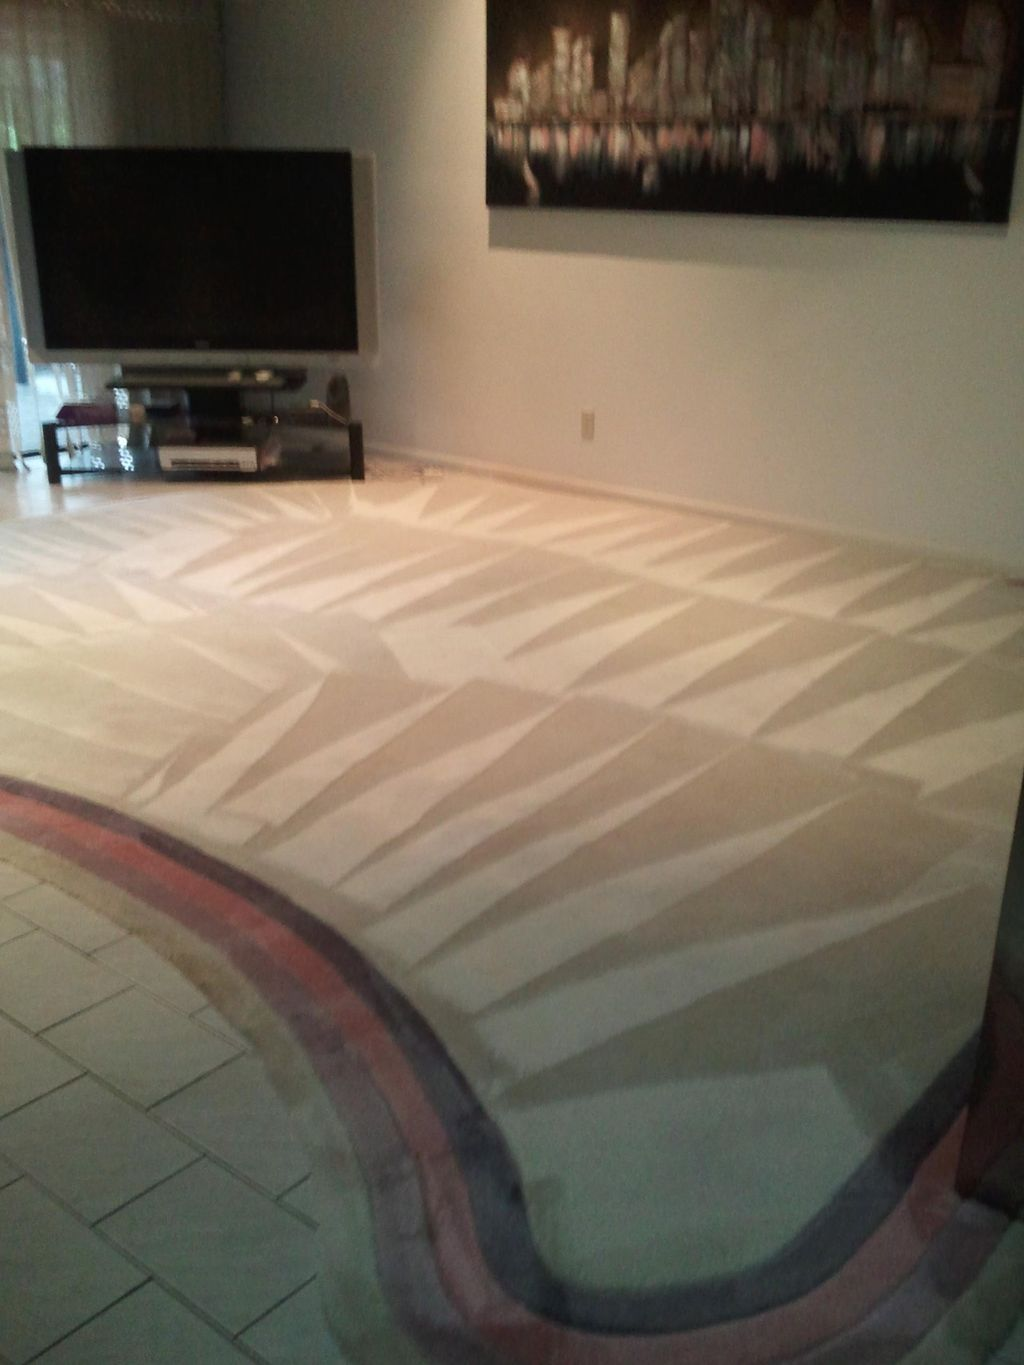 CLEANLOOK CARPET AND TILE